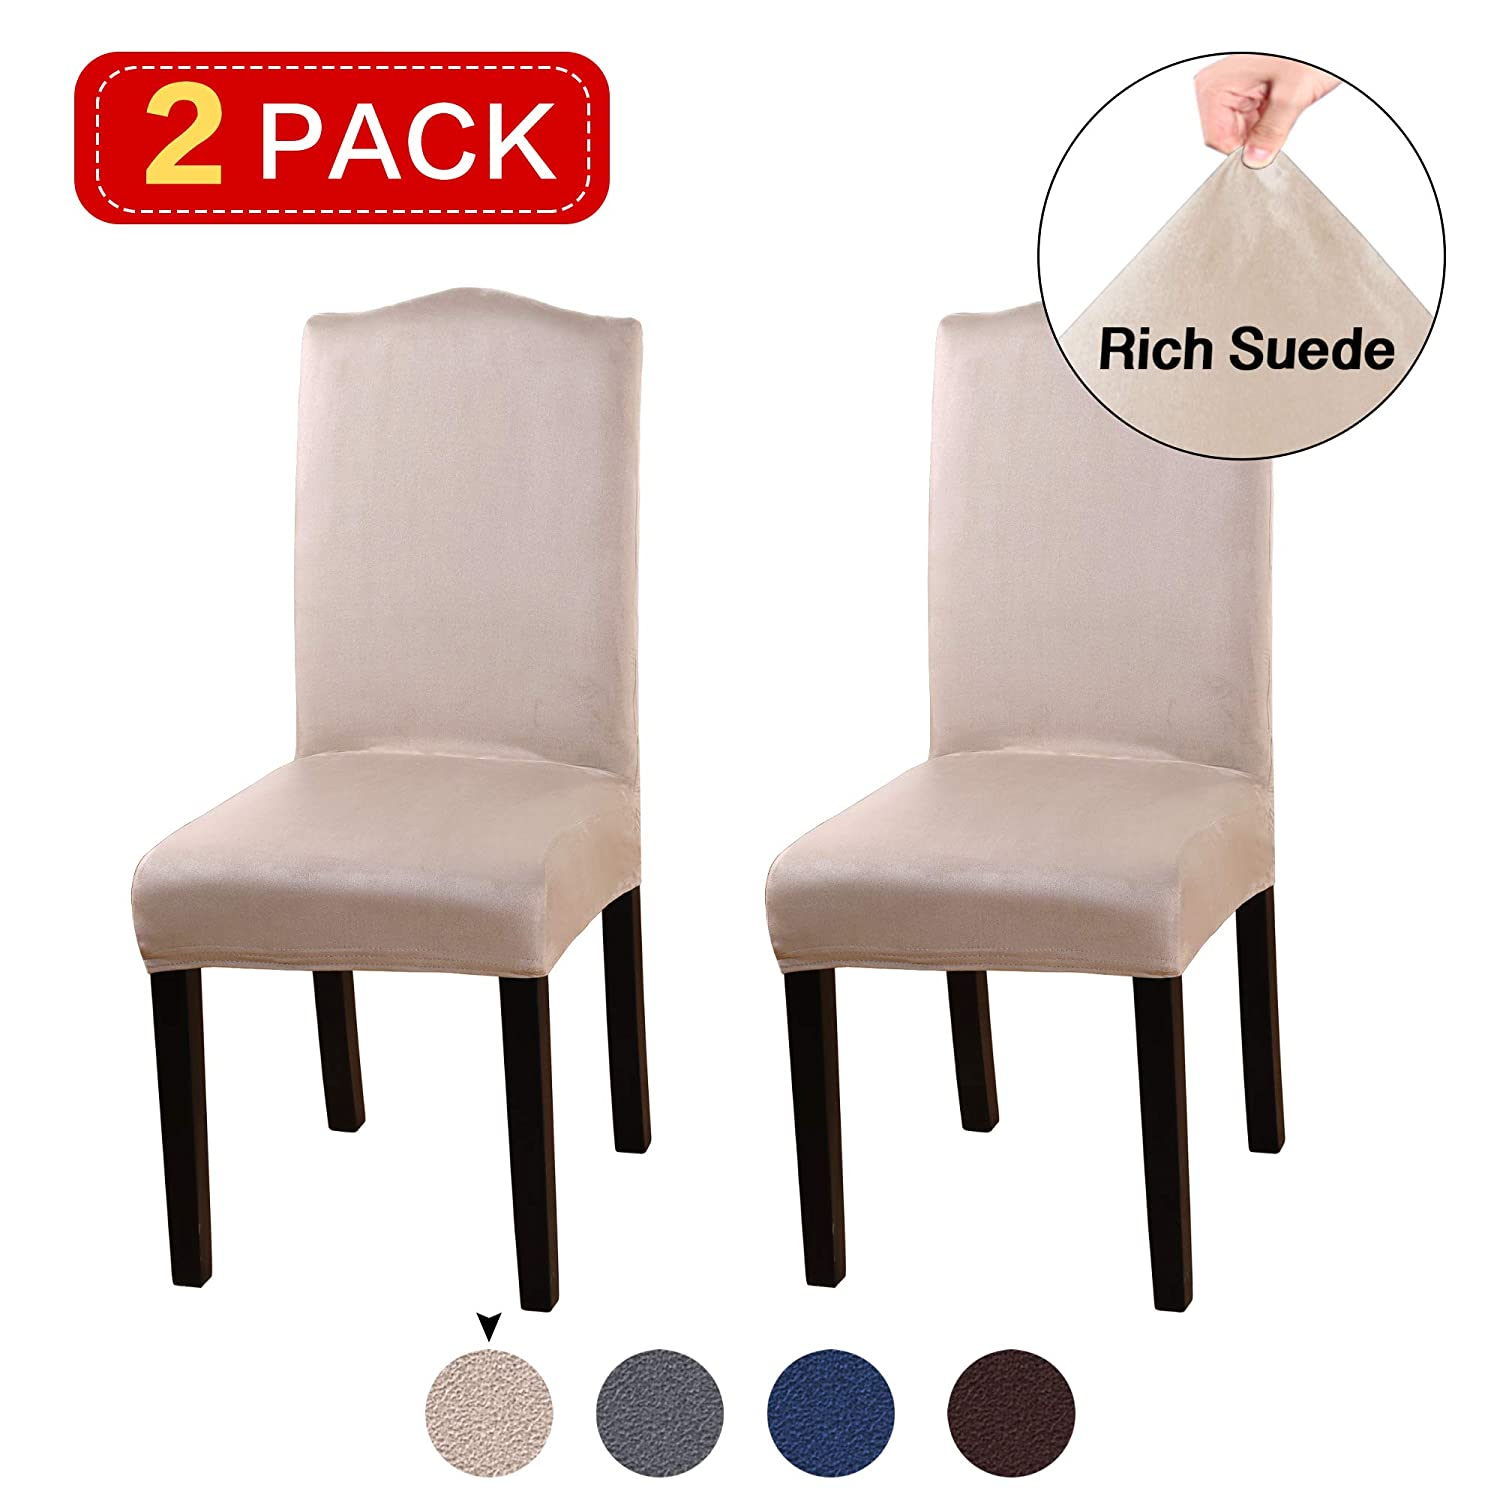 Ceremony Turquoize Stretch Dining Room Chair Slipcovers Washable Removable High Chair Protector Cover Seat Slipcover for Hotel Banquet Wedding Partym Set of 2 Dining Room